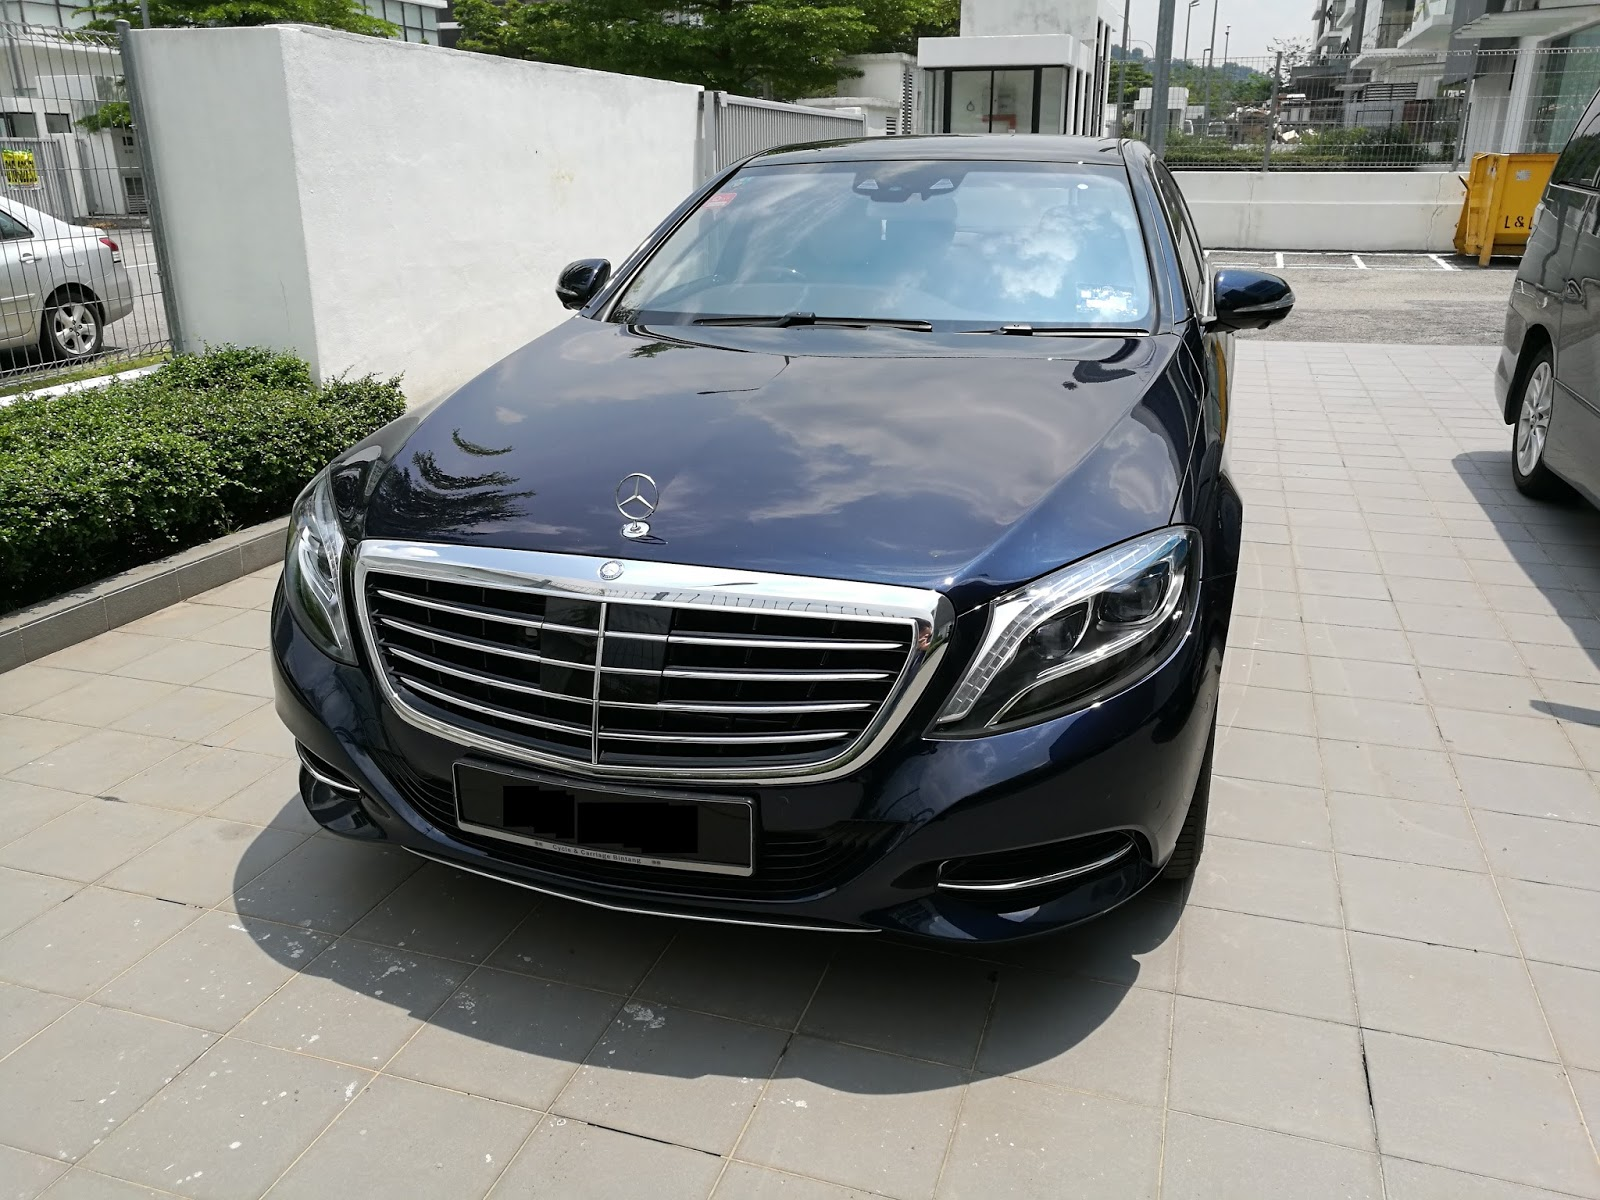 When My Father First Drove The S400H Back, I Was Impressed By How High Tech  And Comfortable This Car Is. There Are A Lot More Gadgets And The Seats Are  Very ...